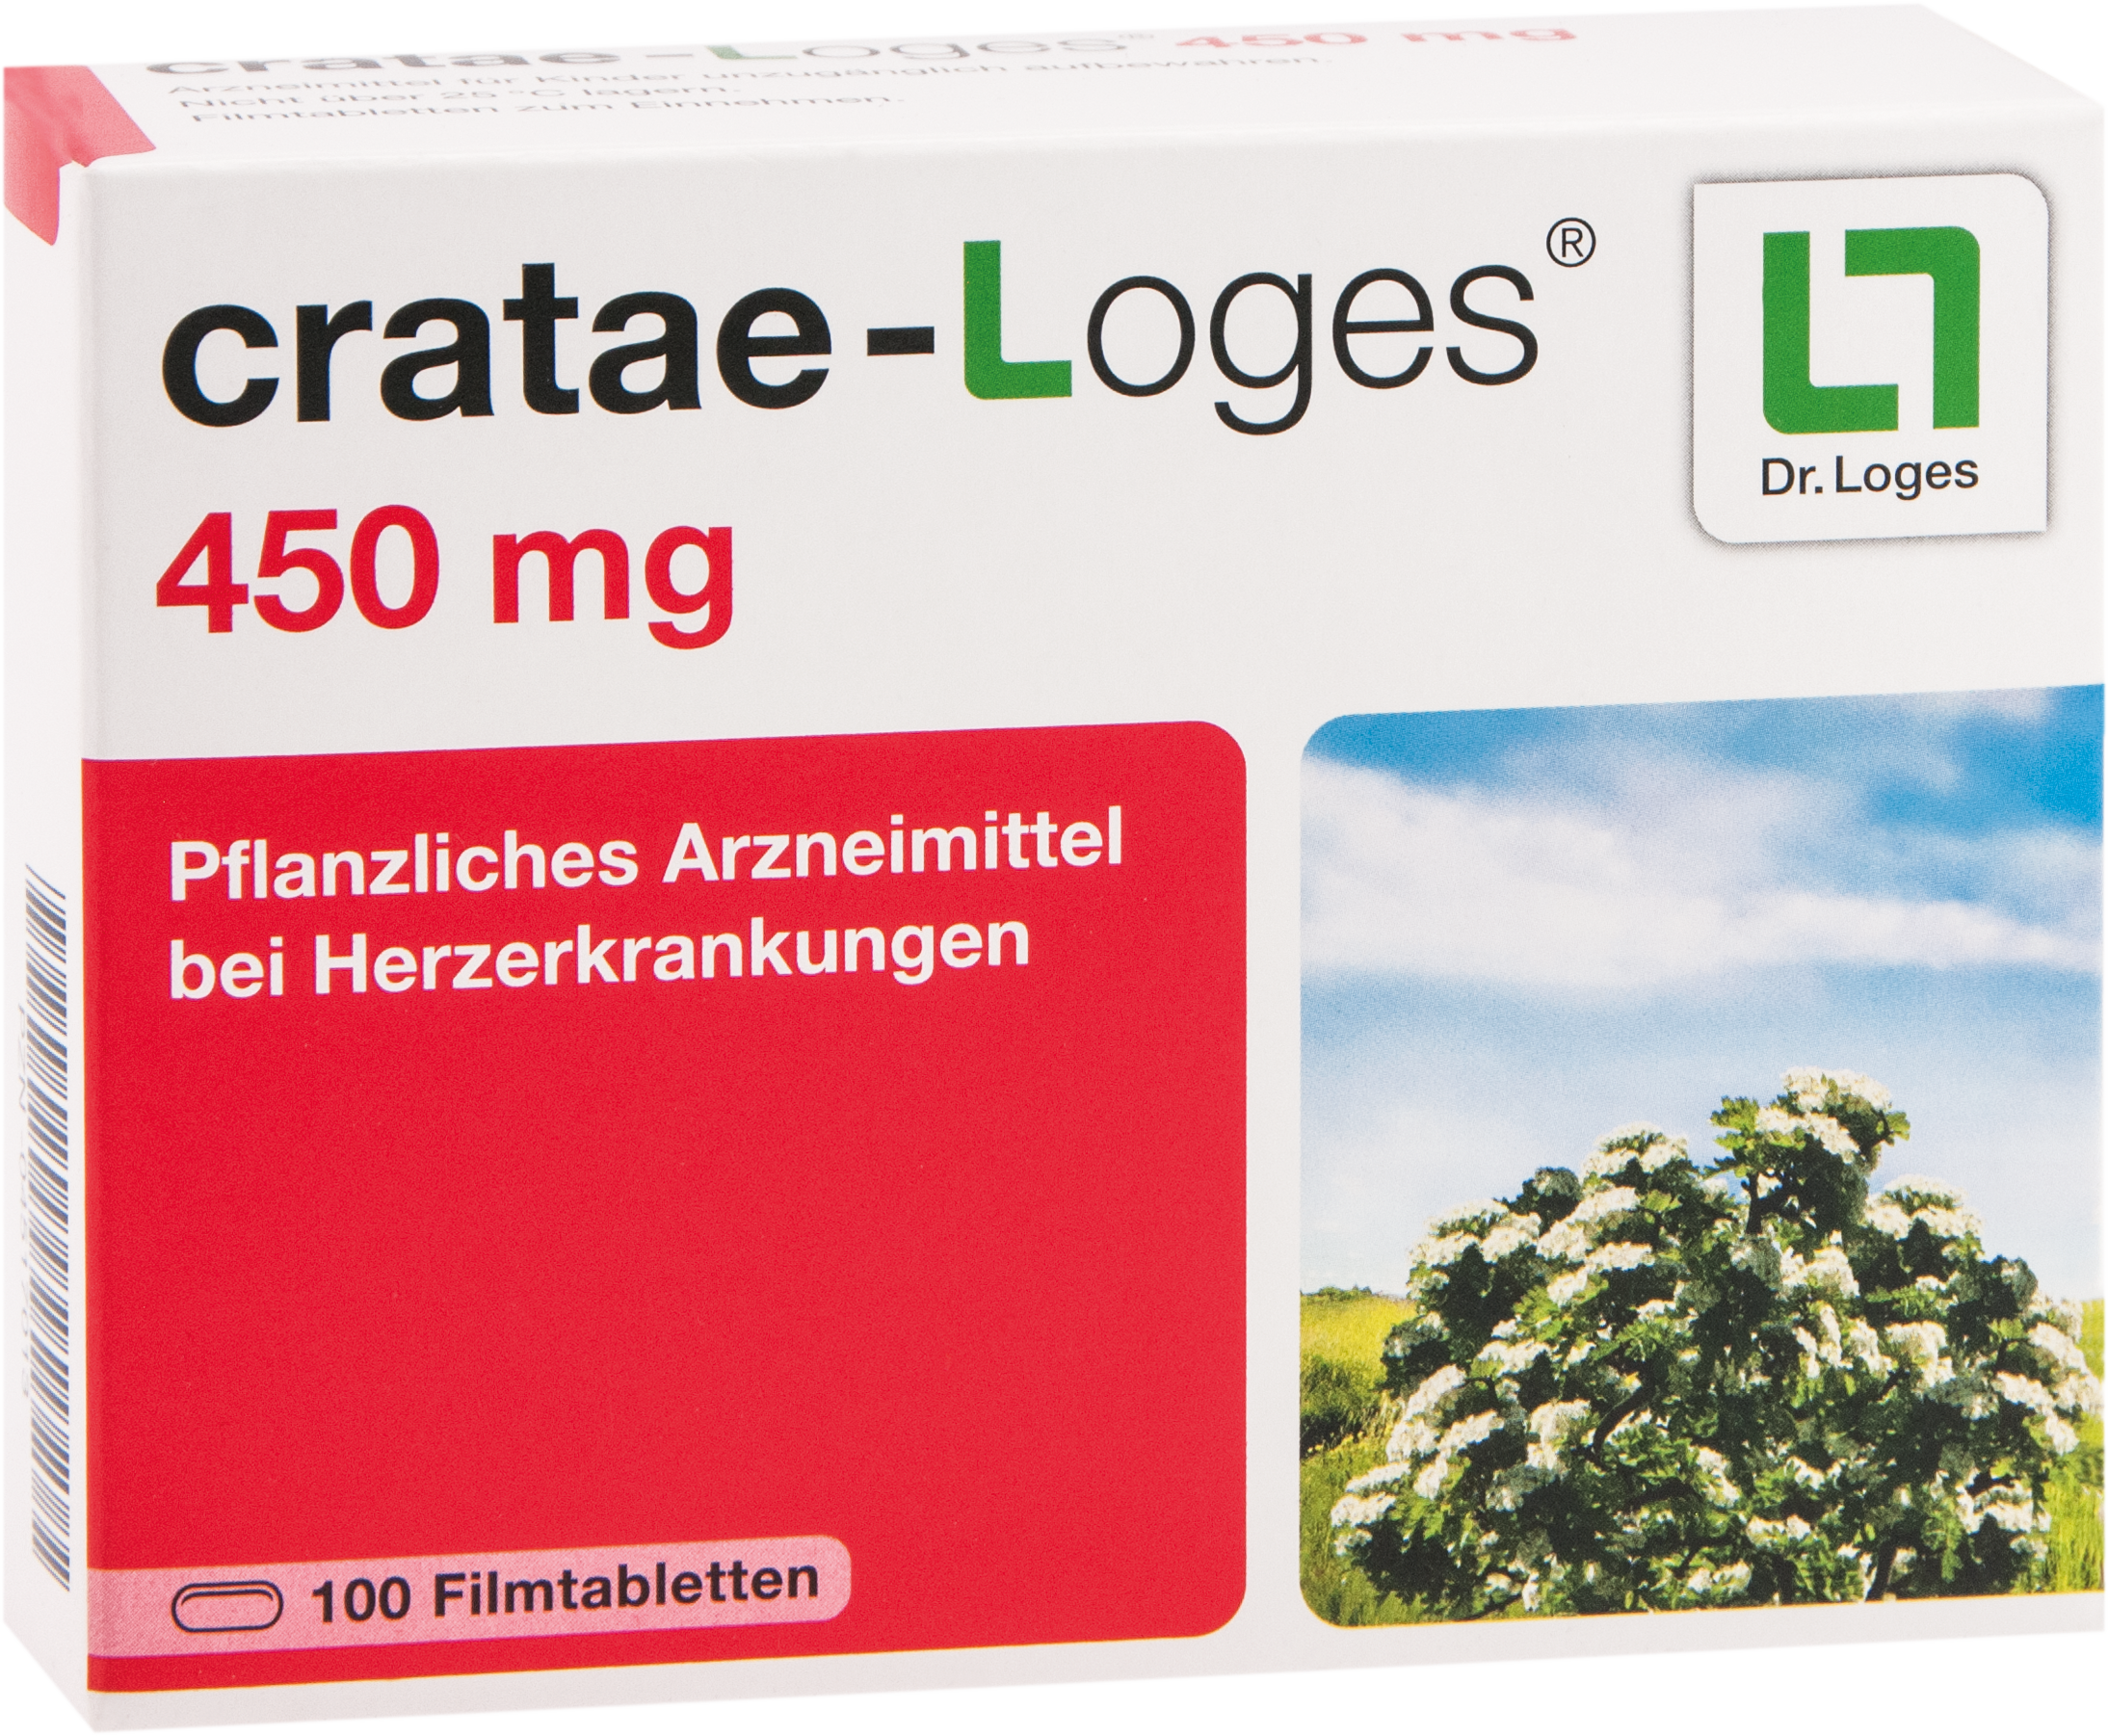 cratae-Loges 450 mg